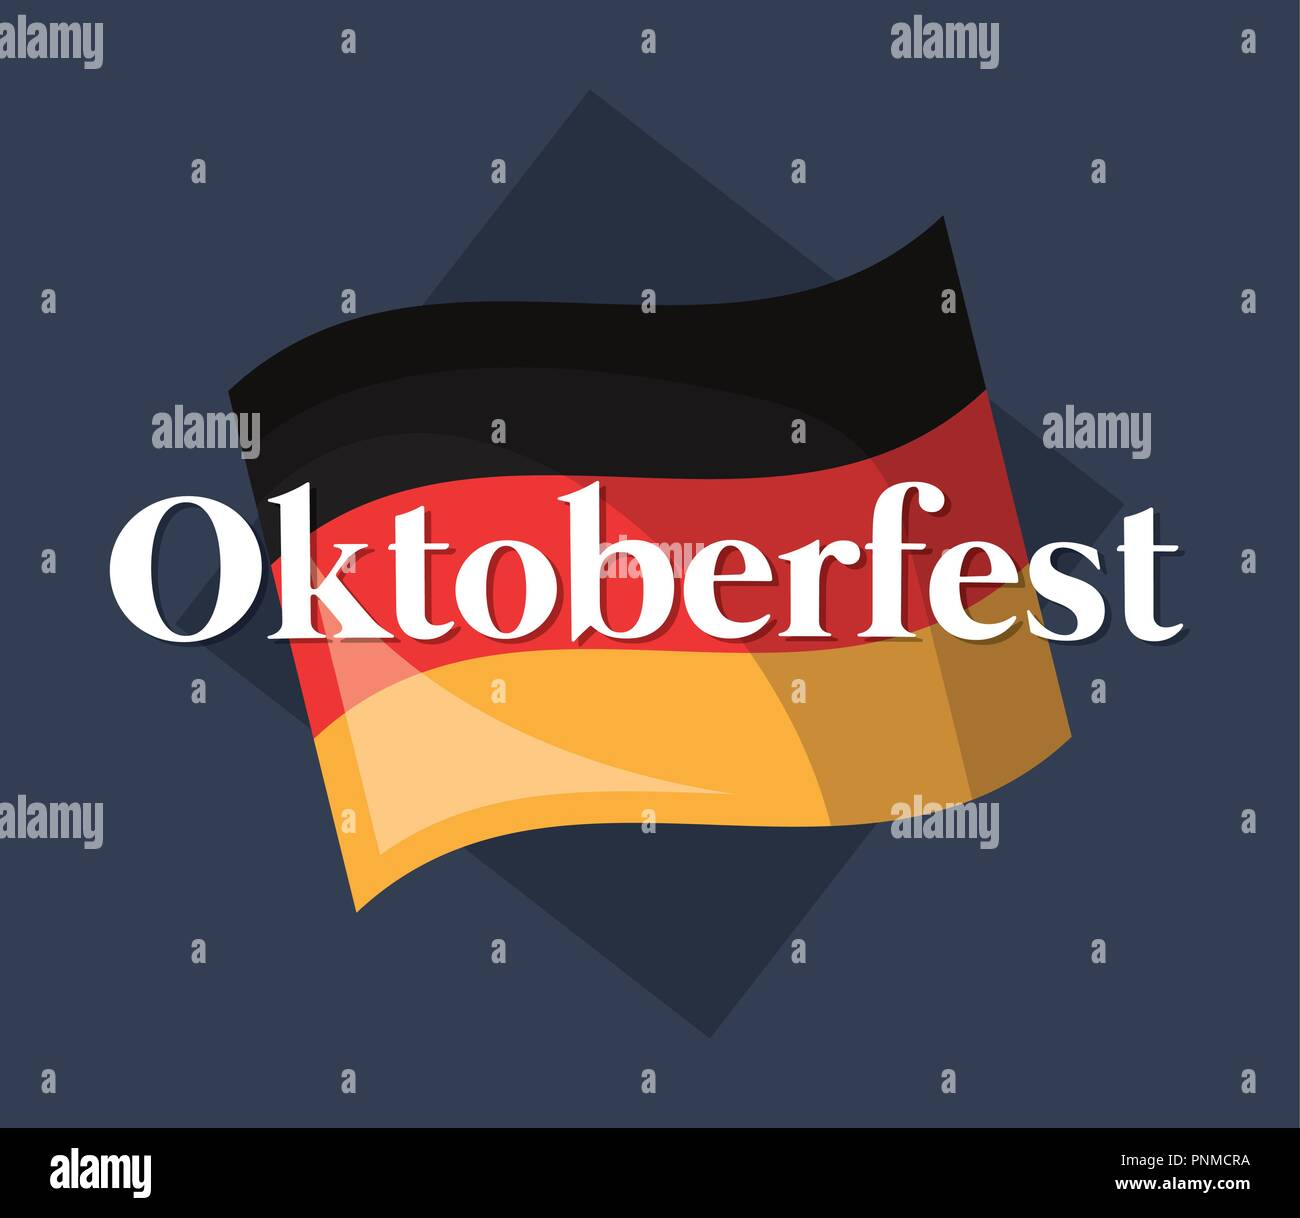 oktoberfest label with germany flag vector illustration design - Stock Image